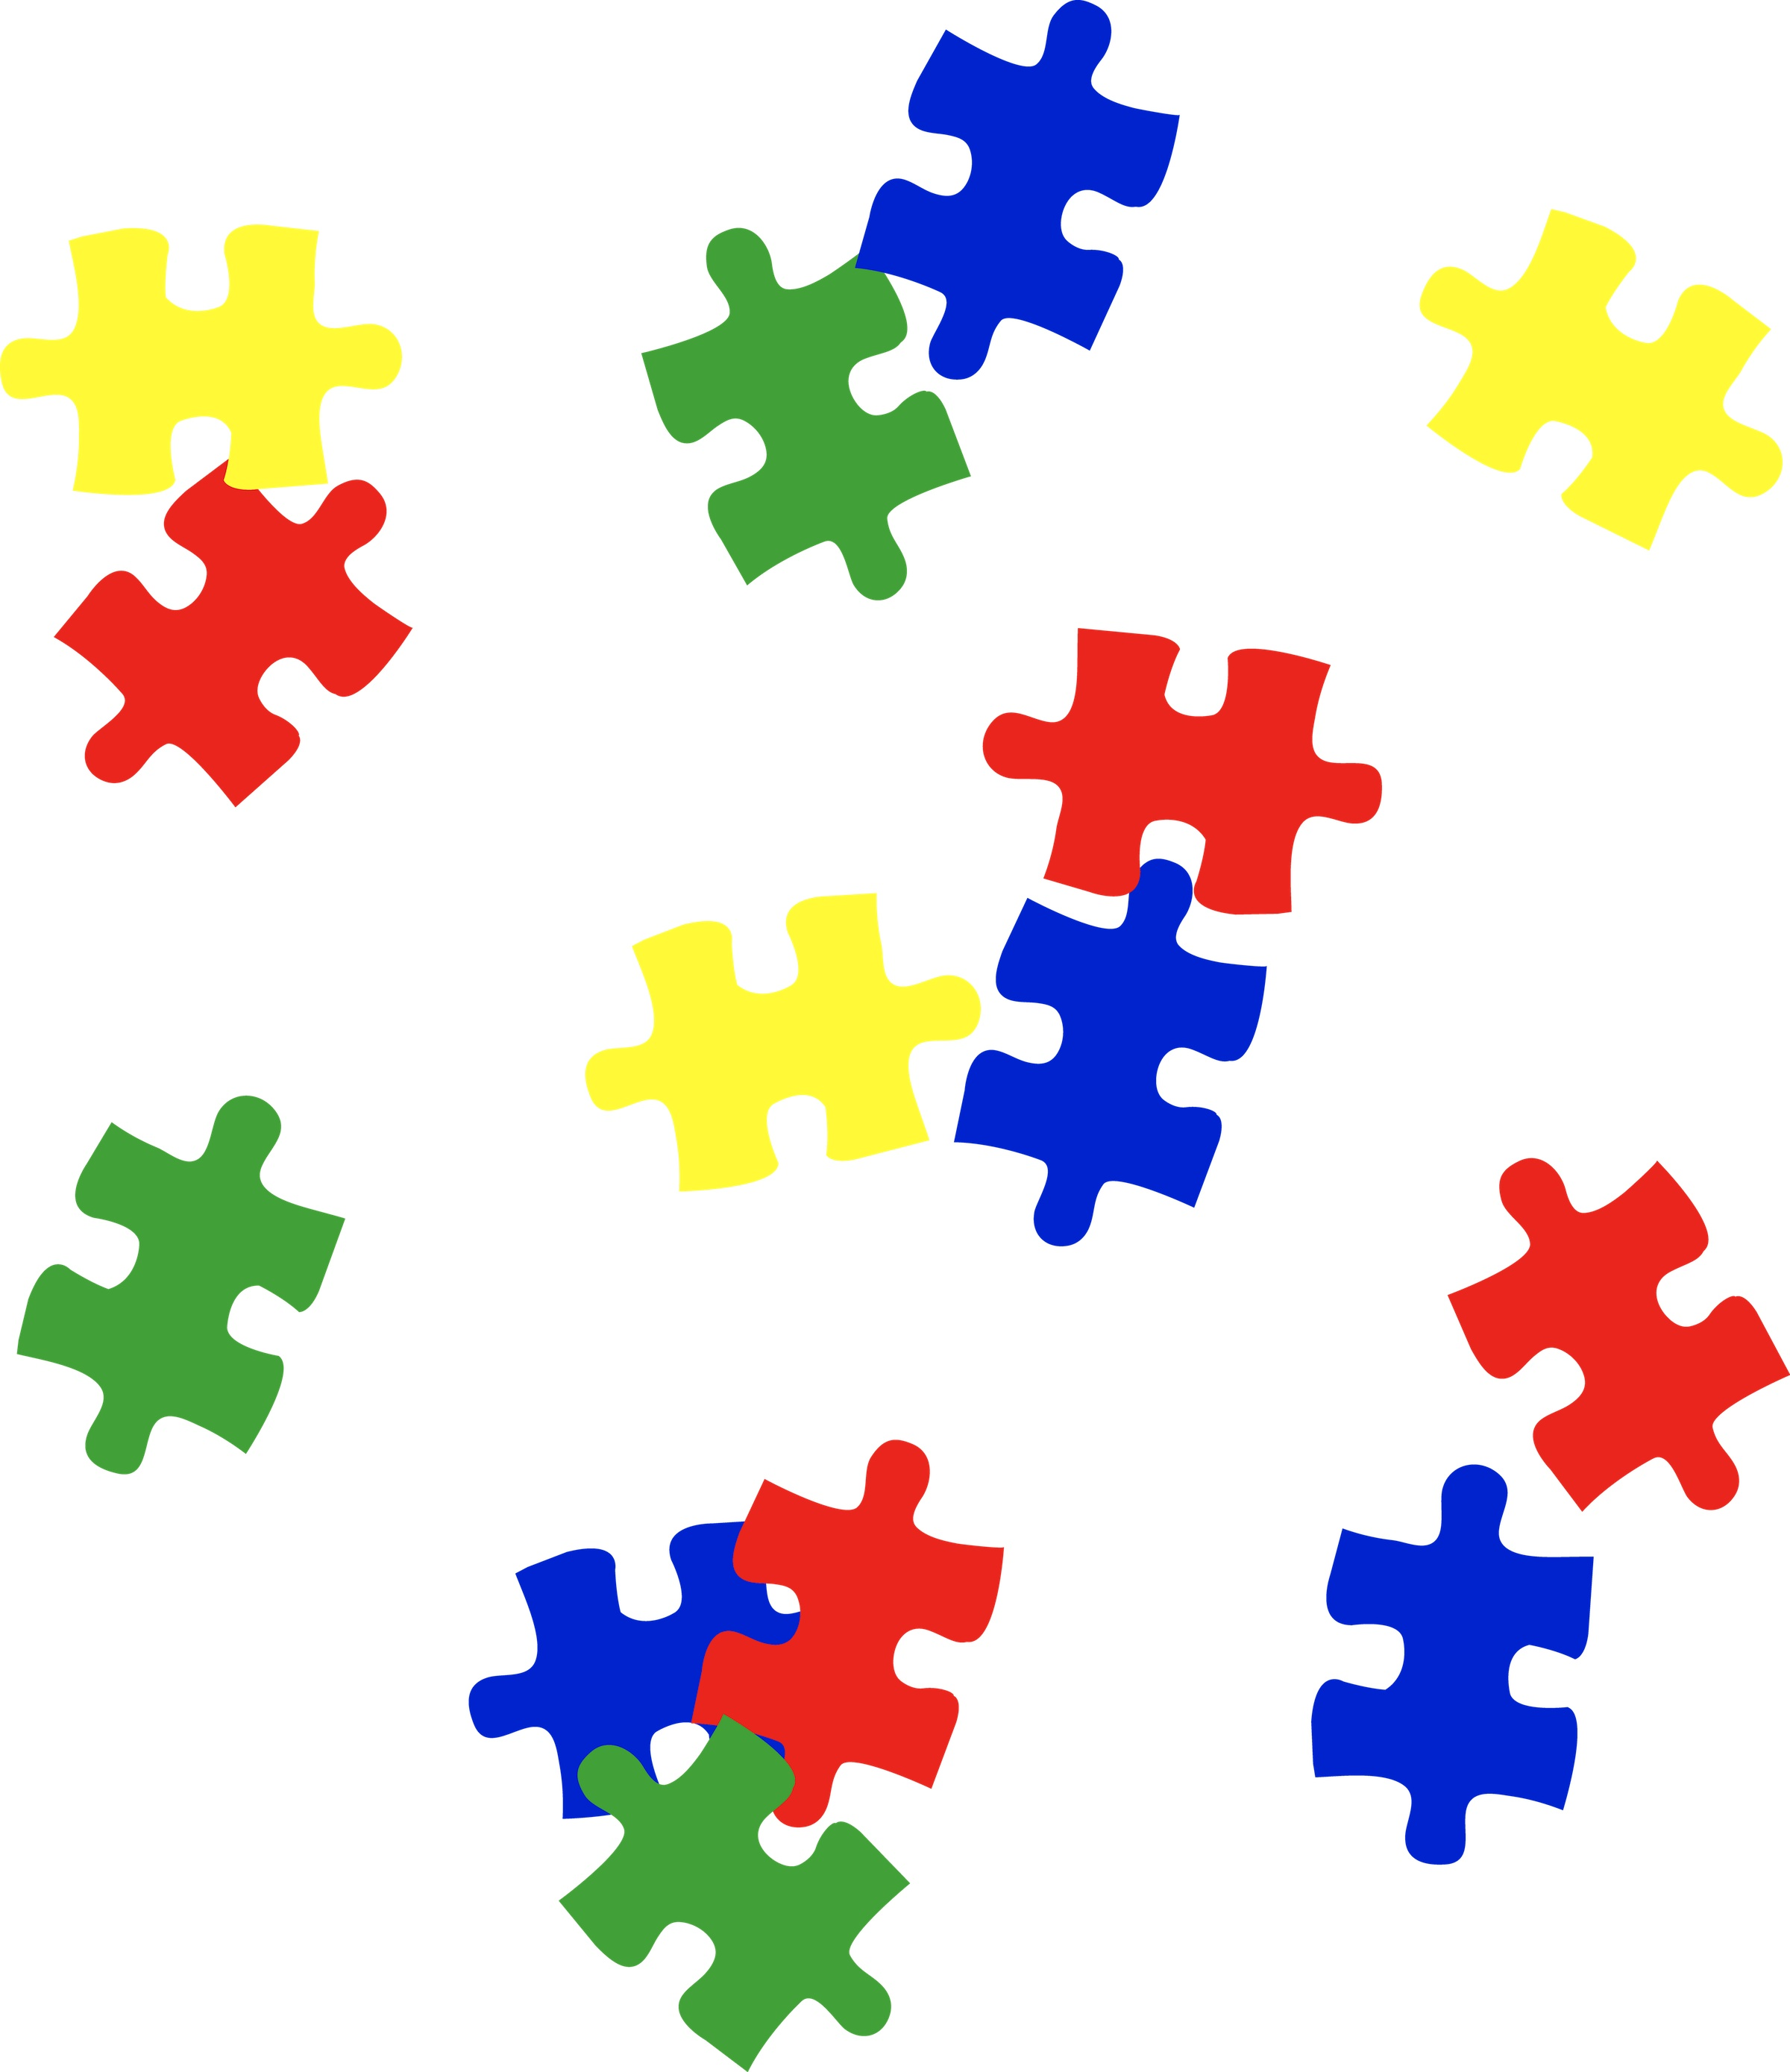 Puzzle for pieces puzzle of